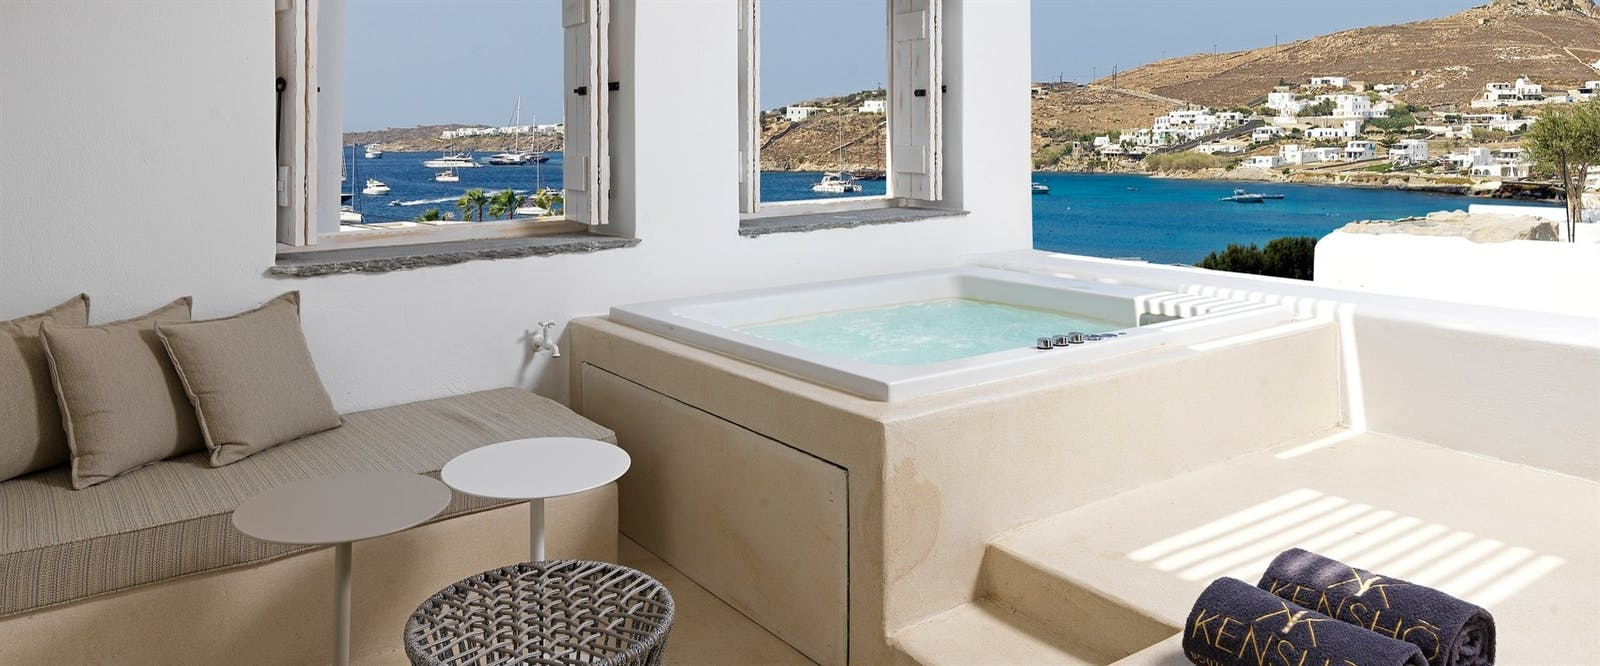 Junior Suite with Outdoor Hot Tub at Kenshõ Boutique Hotel & Suites, Ornos, Greece